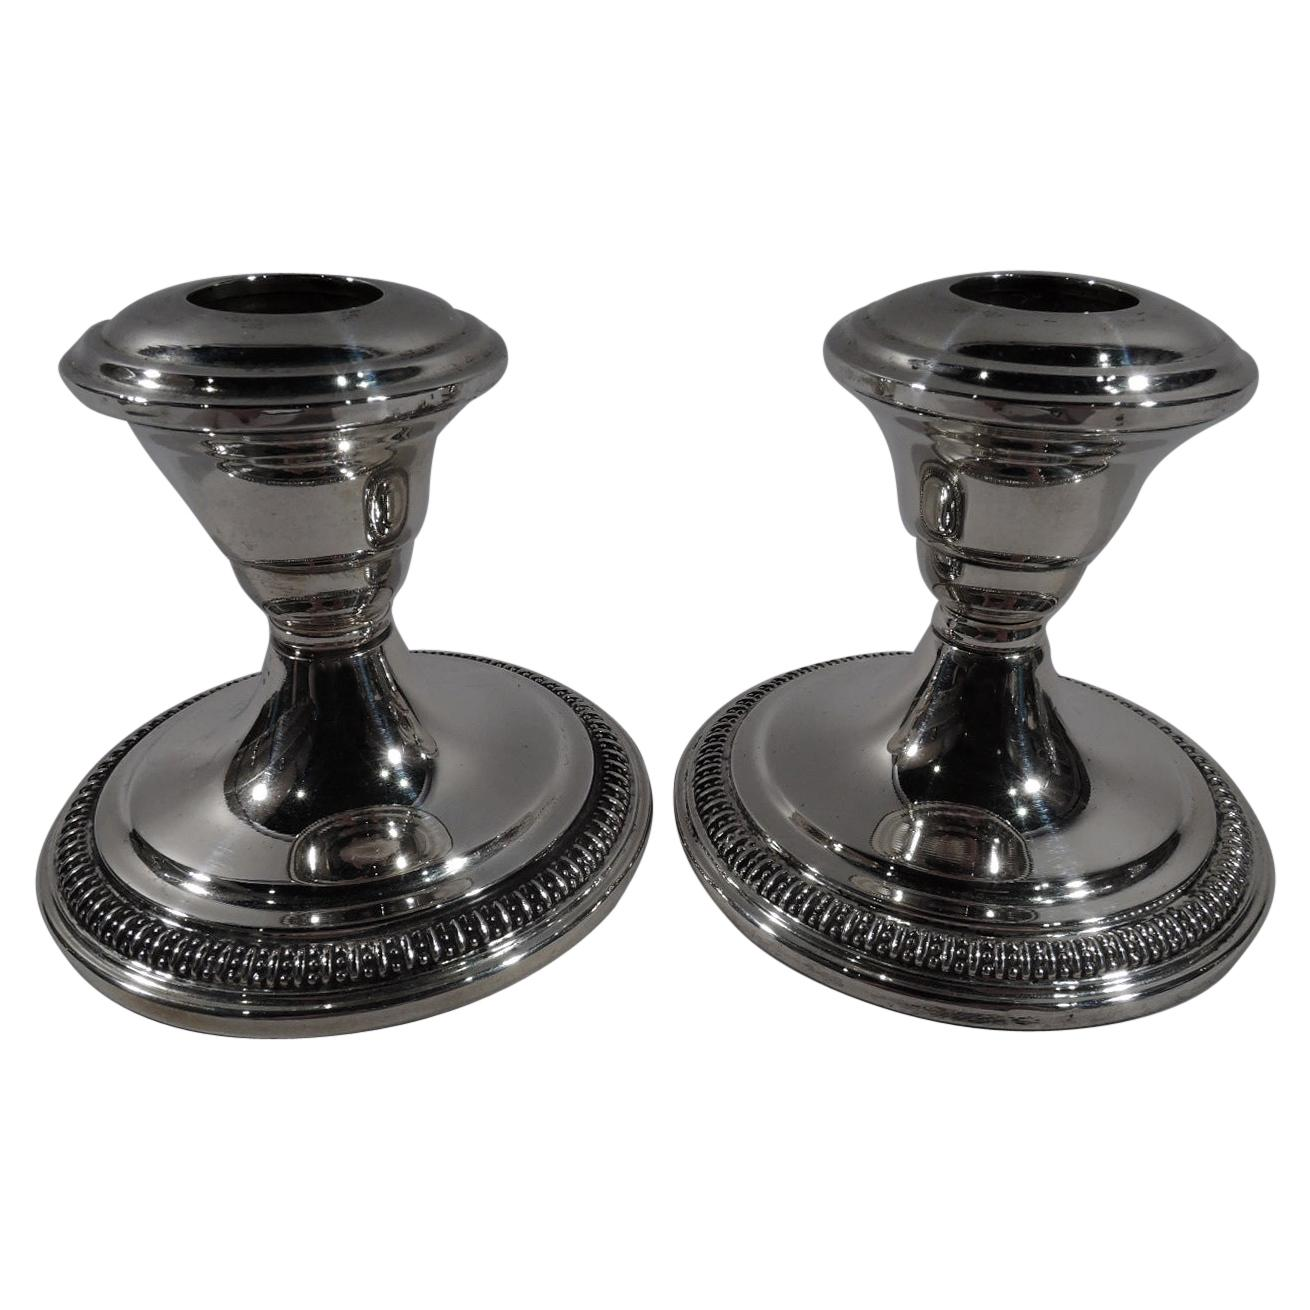 Pair of American Art Deco Sterling Silver Low Candlesticks